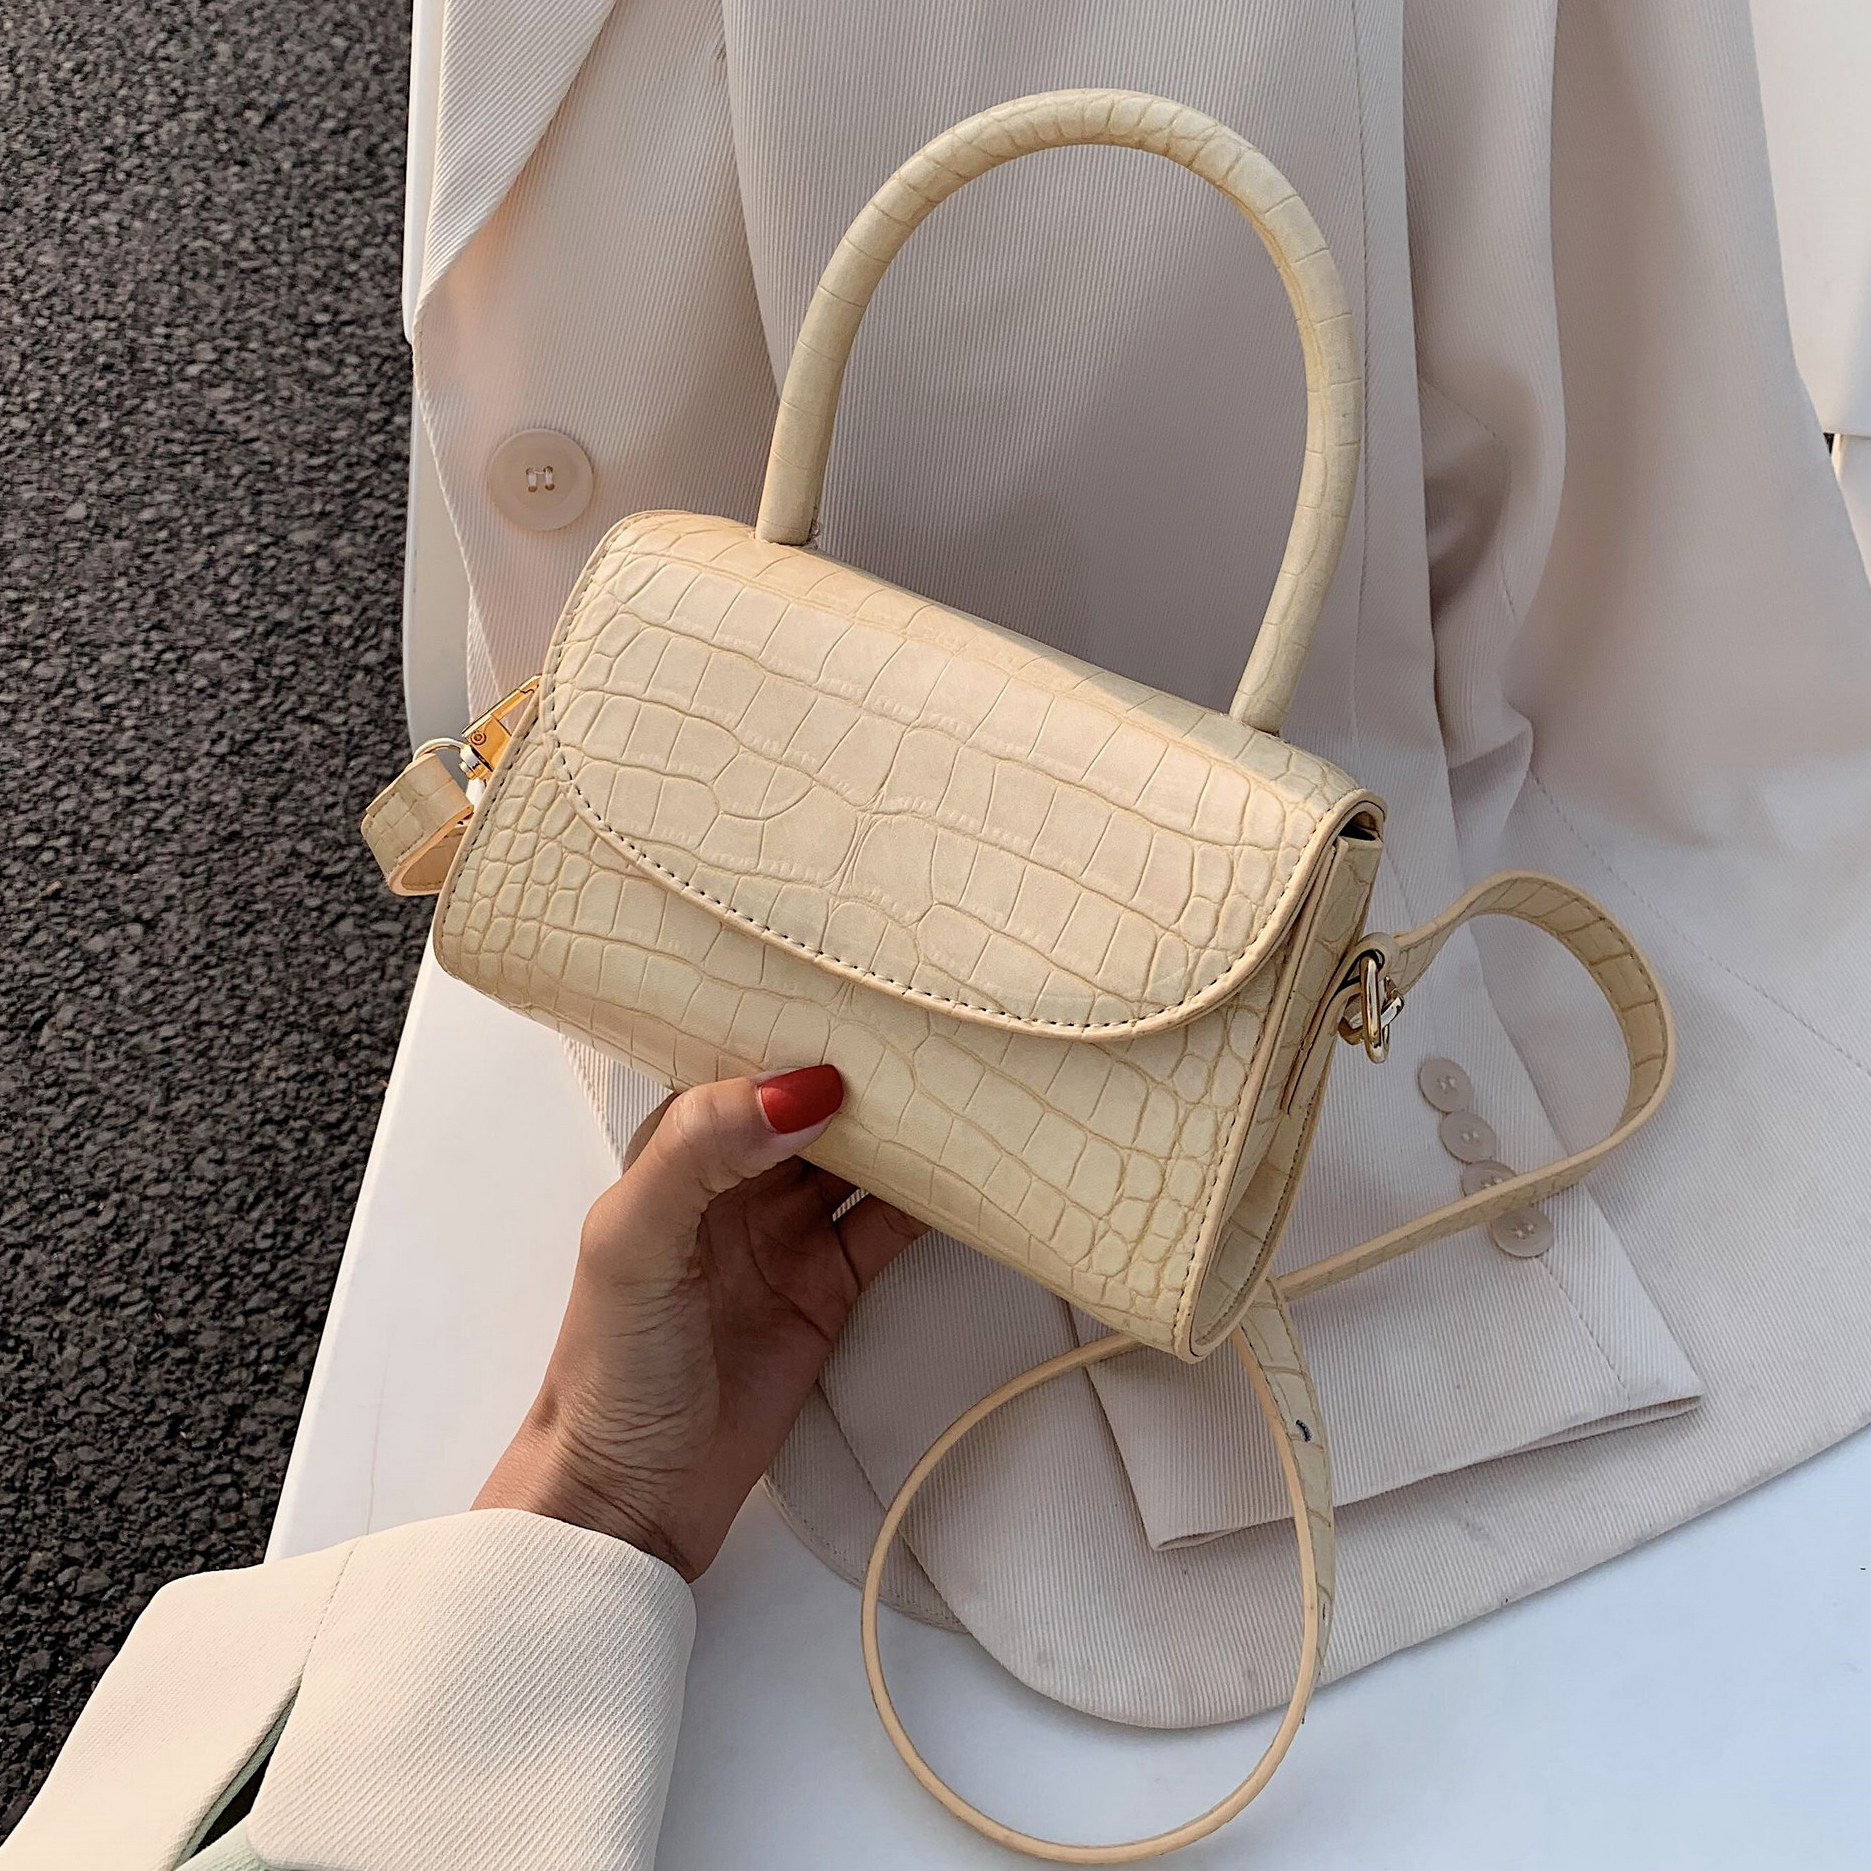 MINI Stone Pattern Small PU Leather Crossbody Bags For Women 2020  Shoulder Handbags Female Travel Totes Cross Body Bag